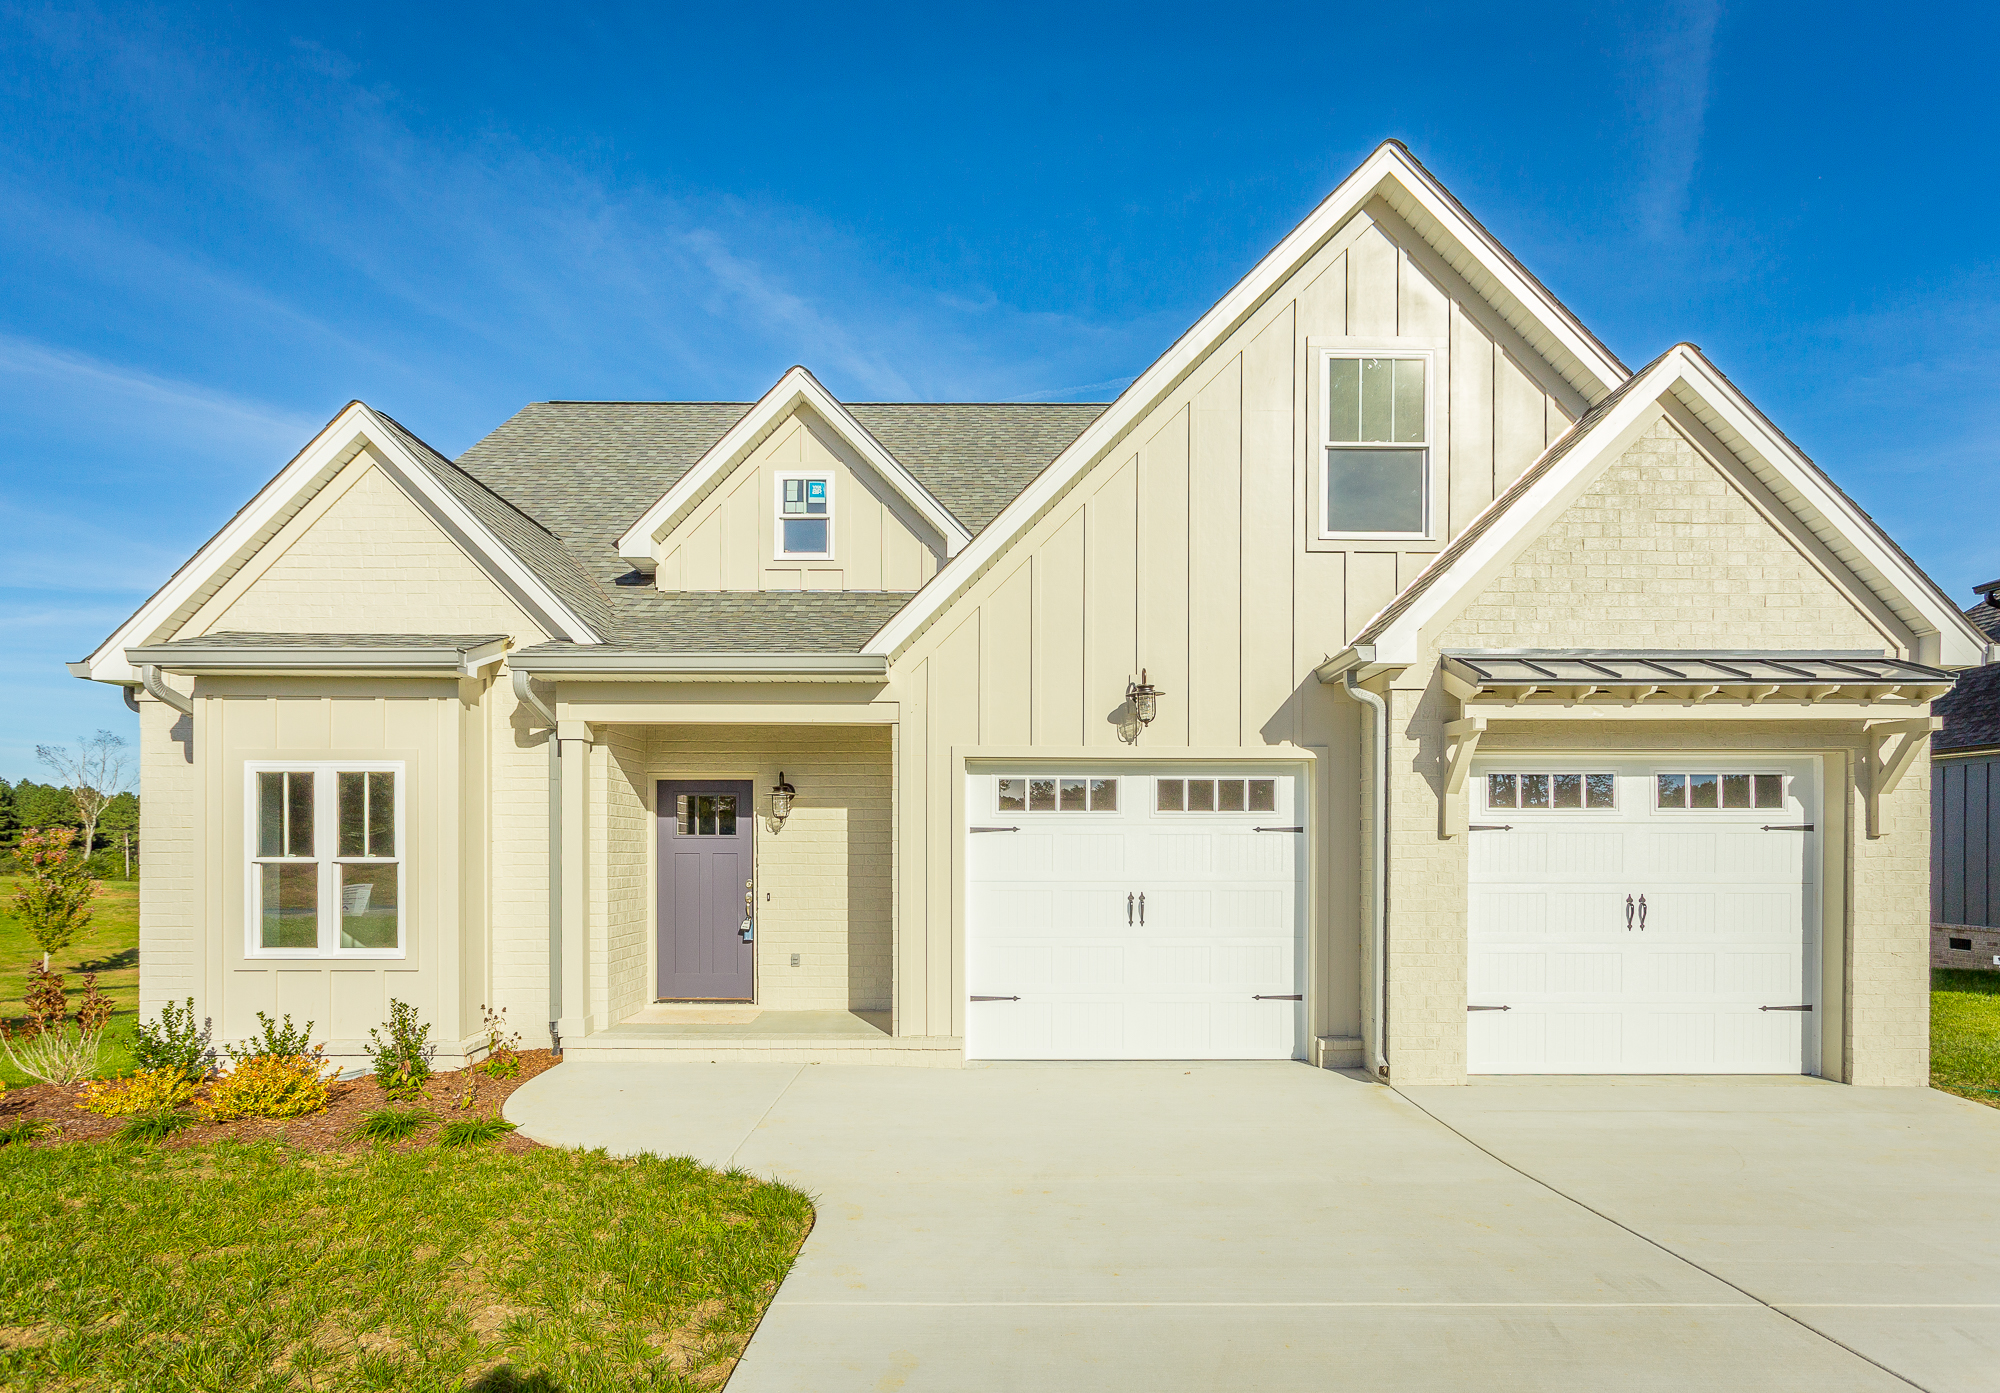 Home For Sale At 969 Equestrian Drive in Soddy Daisy, TN